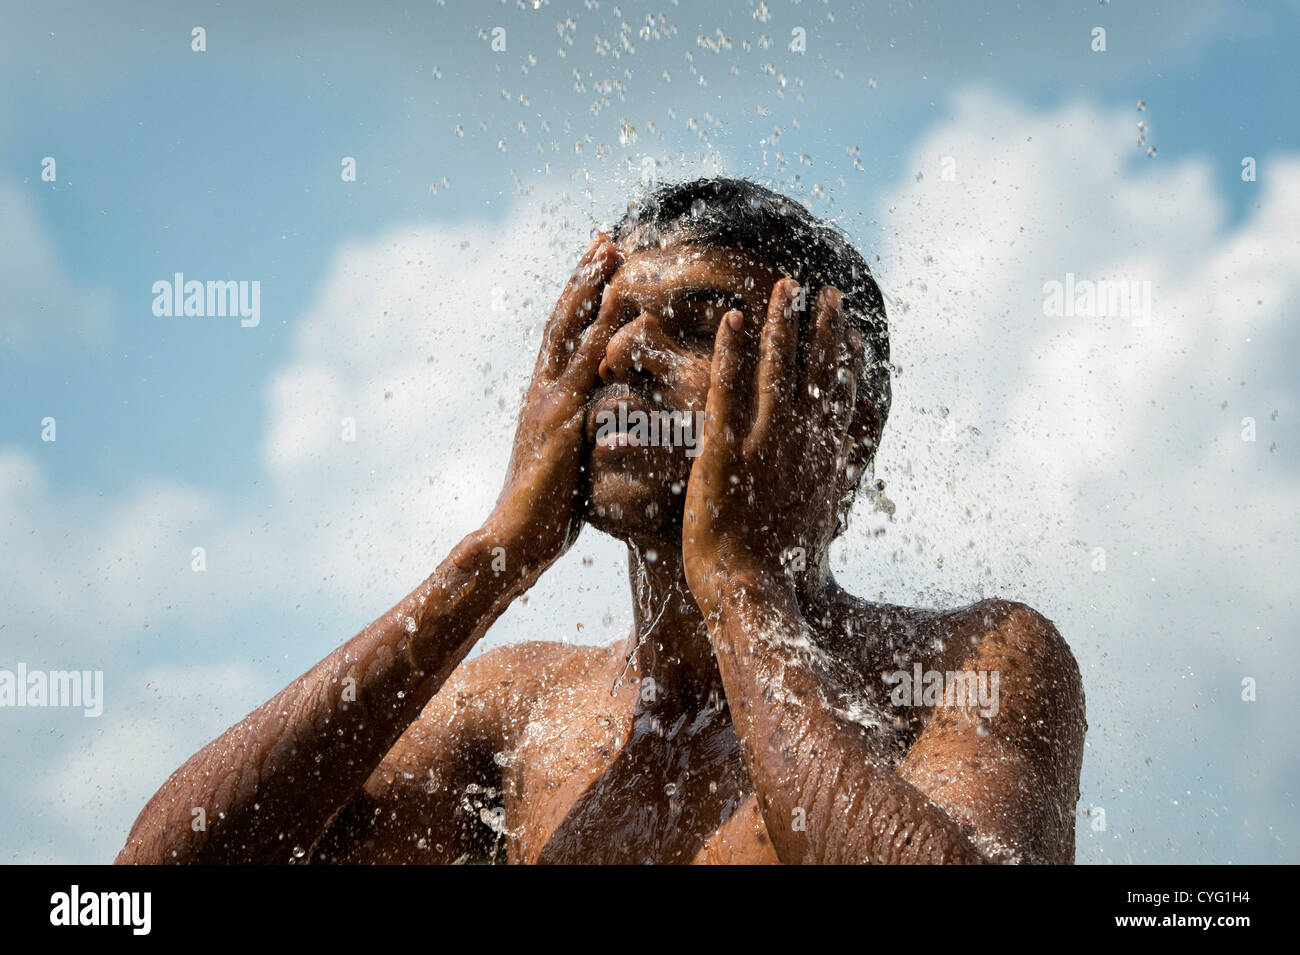 Indian man splashing water on his face against blue sky background. India - Stock Image